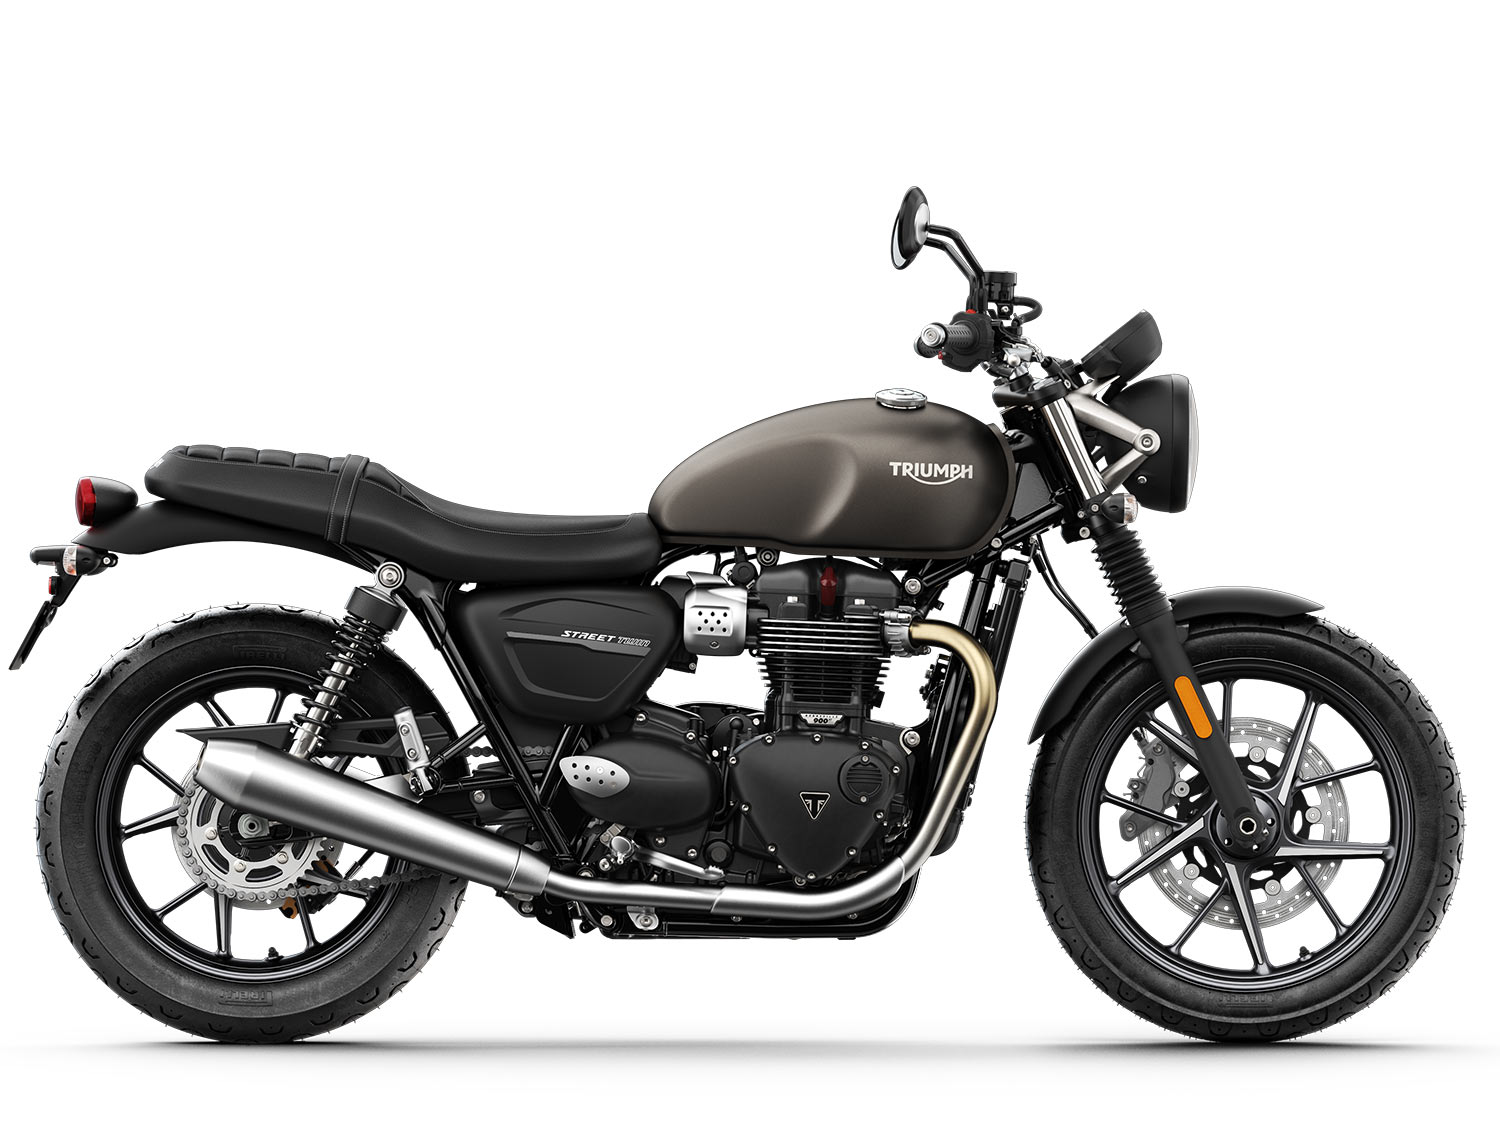 5 Best Bikes For A Tracker Build Cycle World